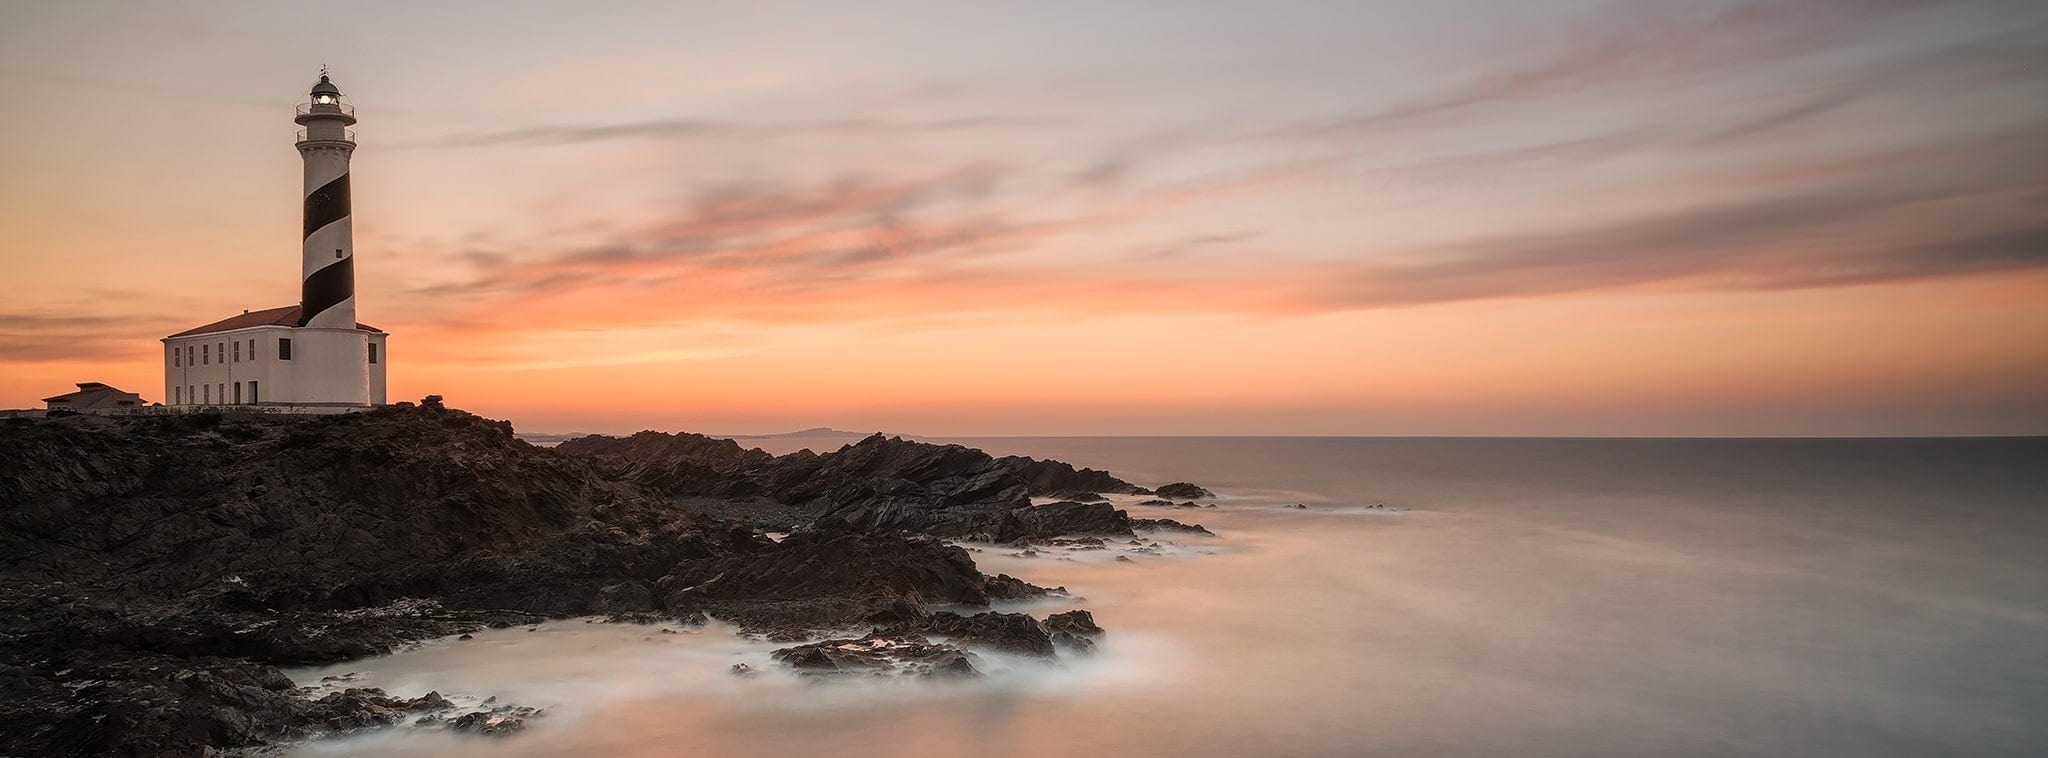 Francesco Gola PhotoPills Camp 2020 Long Exposure Spain Menorca